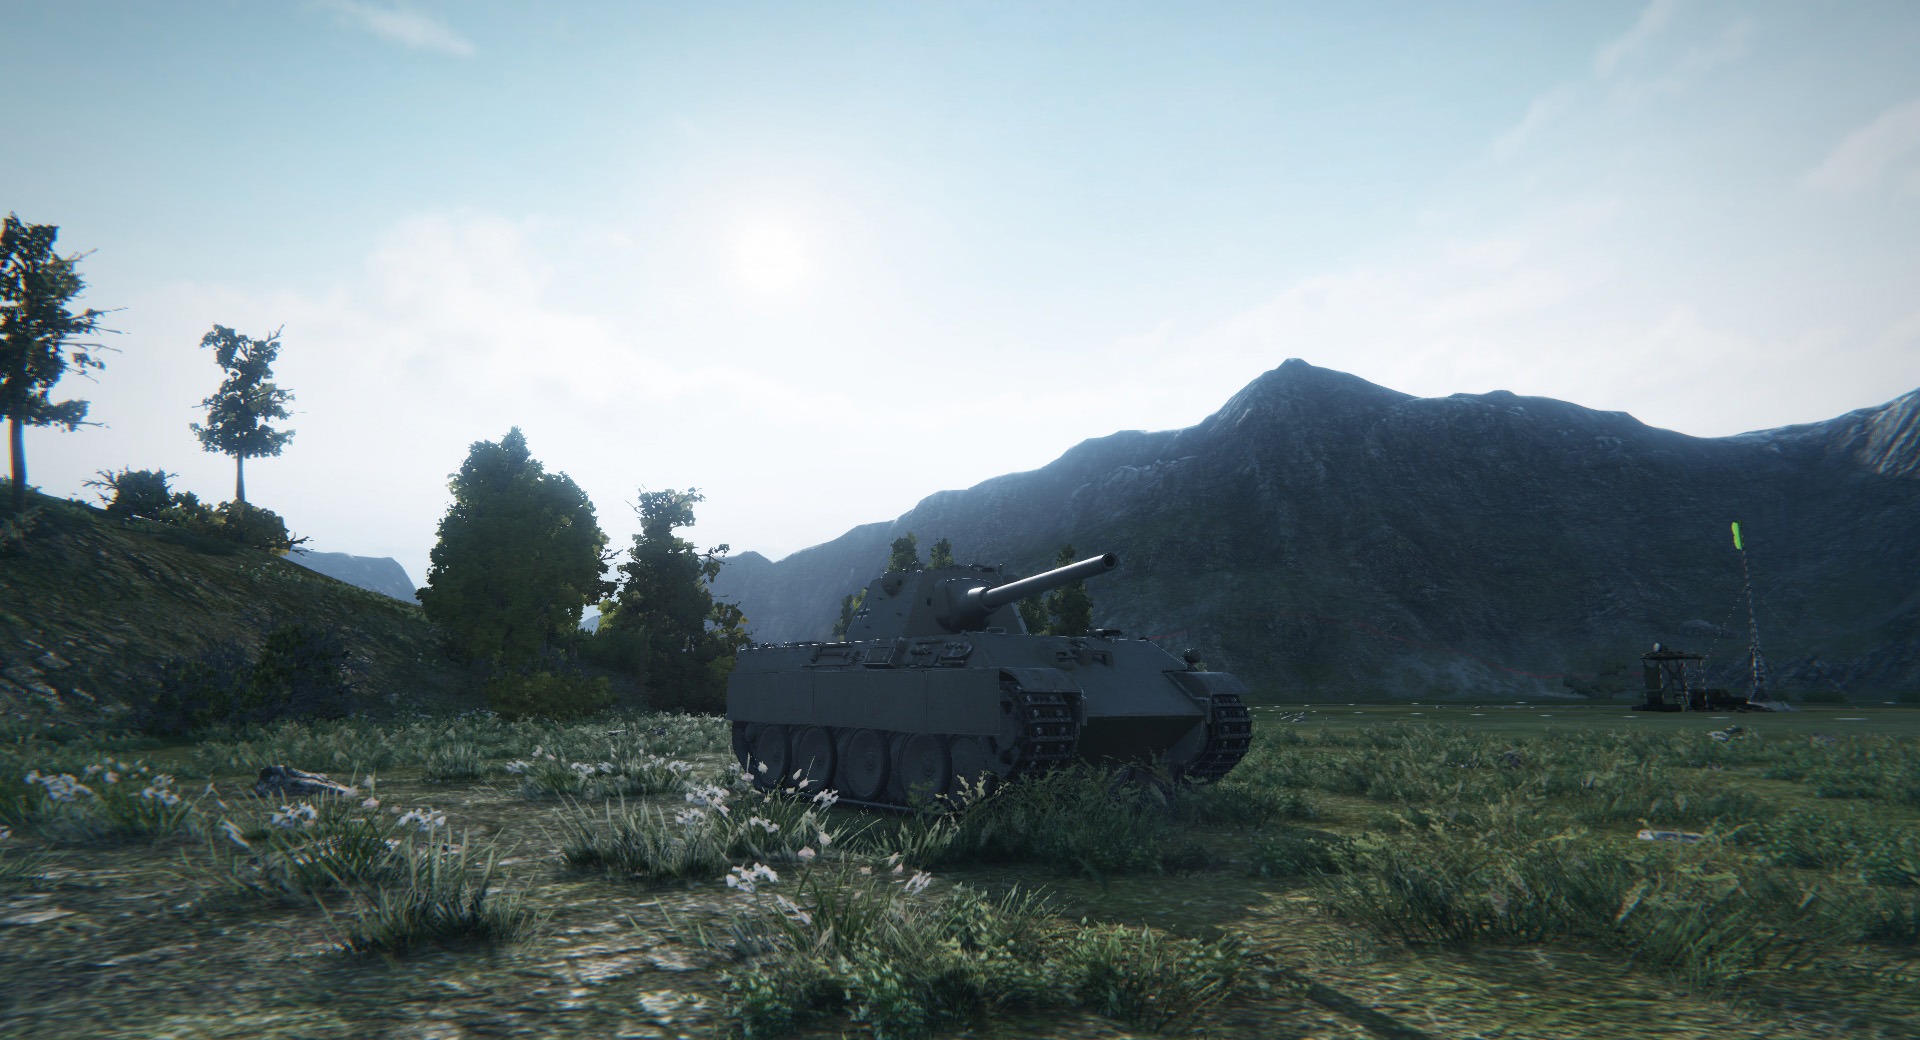 The Panther 8,8 has poor camouflage ratings but makes up for it with its high RoF and gun dispersion.